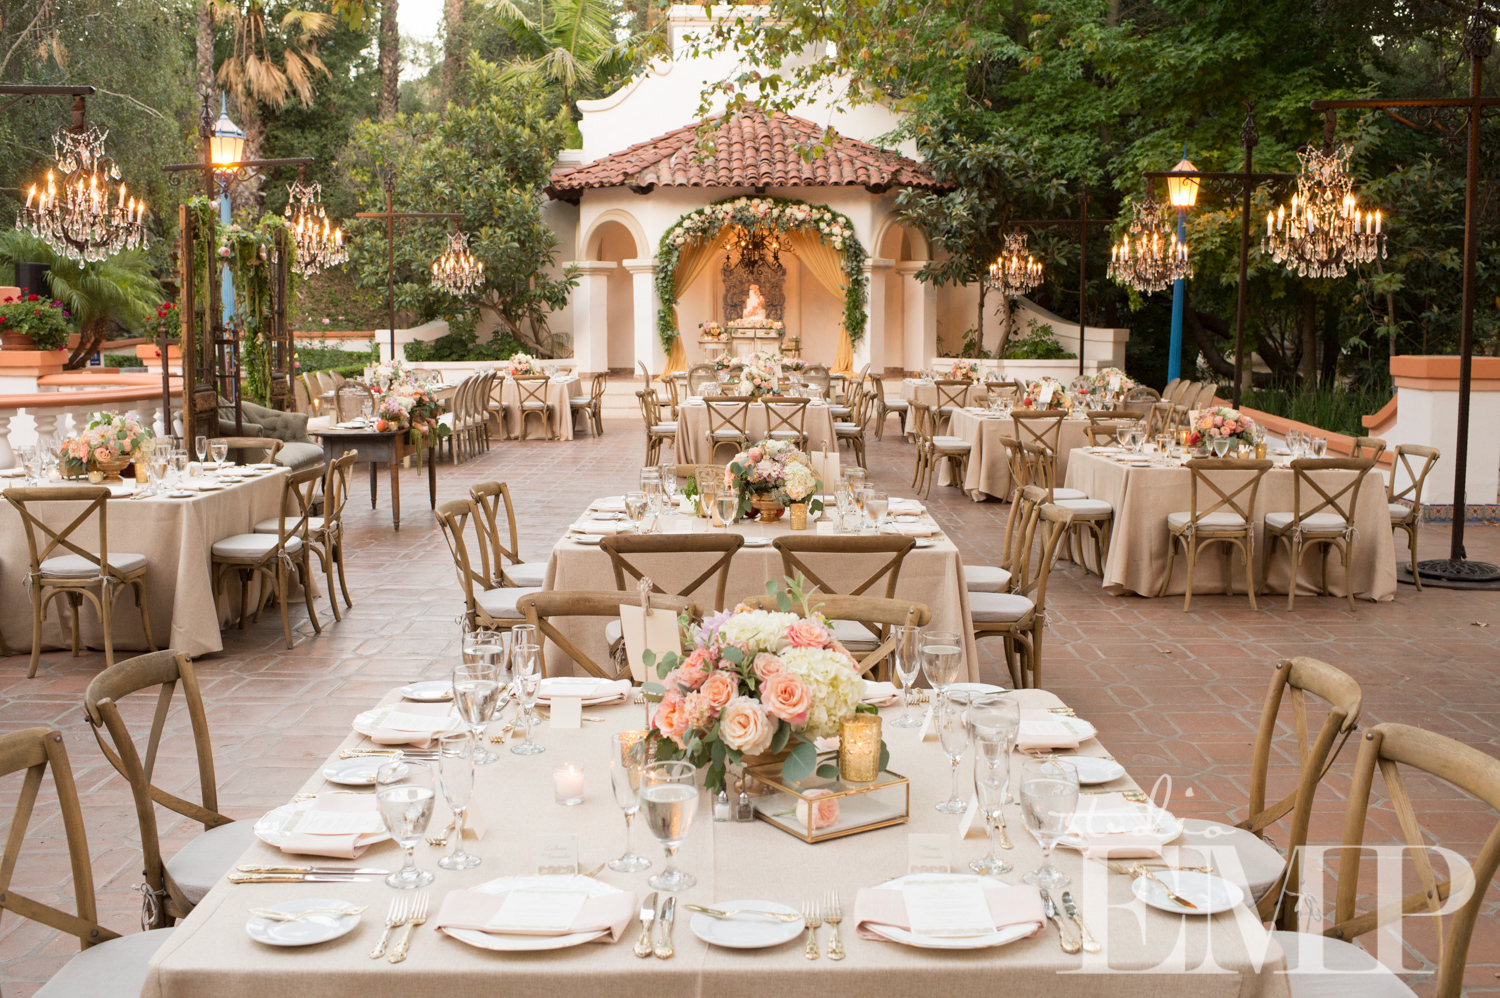 Wedded wednesday featured wedding michella alejandro - Decoraciones de bodas ...